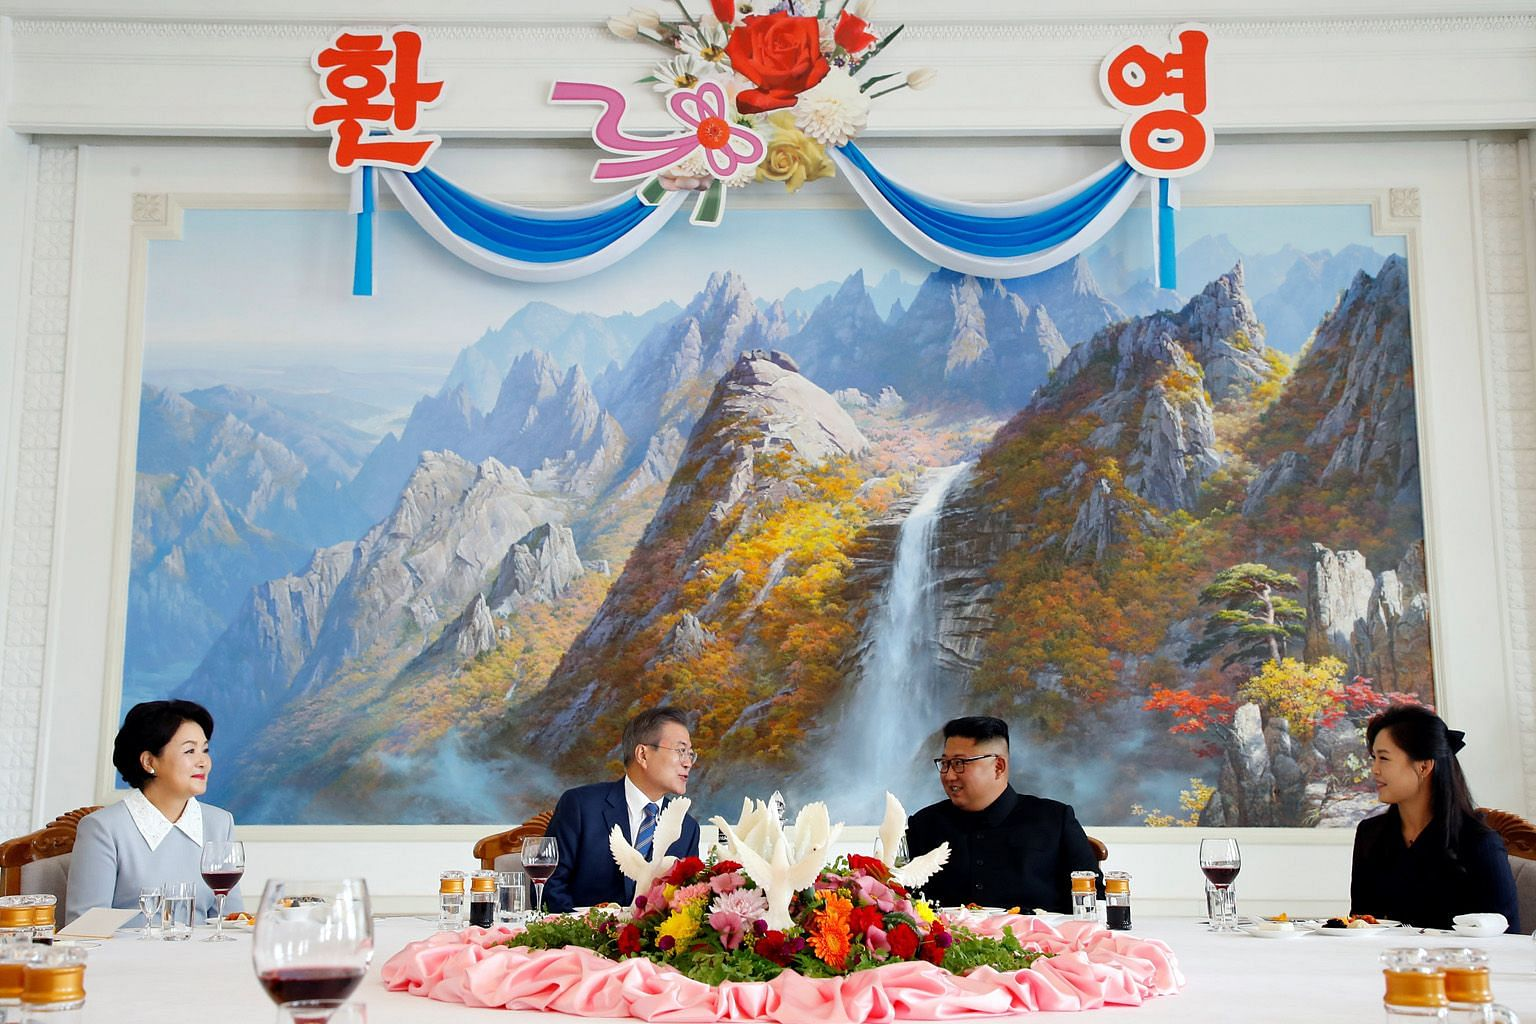 South Korean President Moon Jae-in and his wife Kim Jung-sook having lunch with North Korean leader Kim Jong Un and his wife Ri Sol Ju at Pyongyang's famous cold noodle restaurant Okryukwan yesterday. The two leaders are set to meet again when Mr Kim